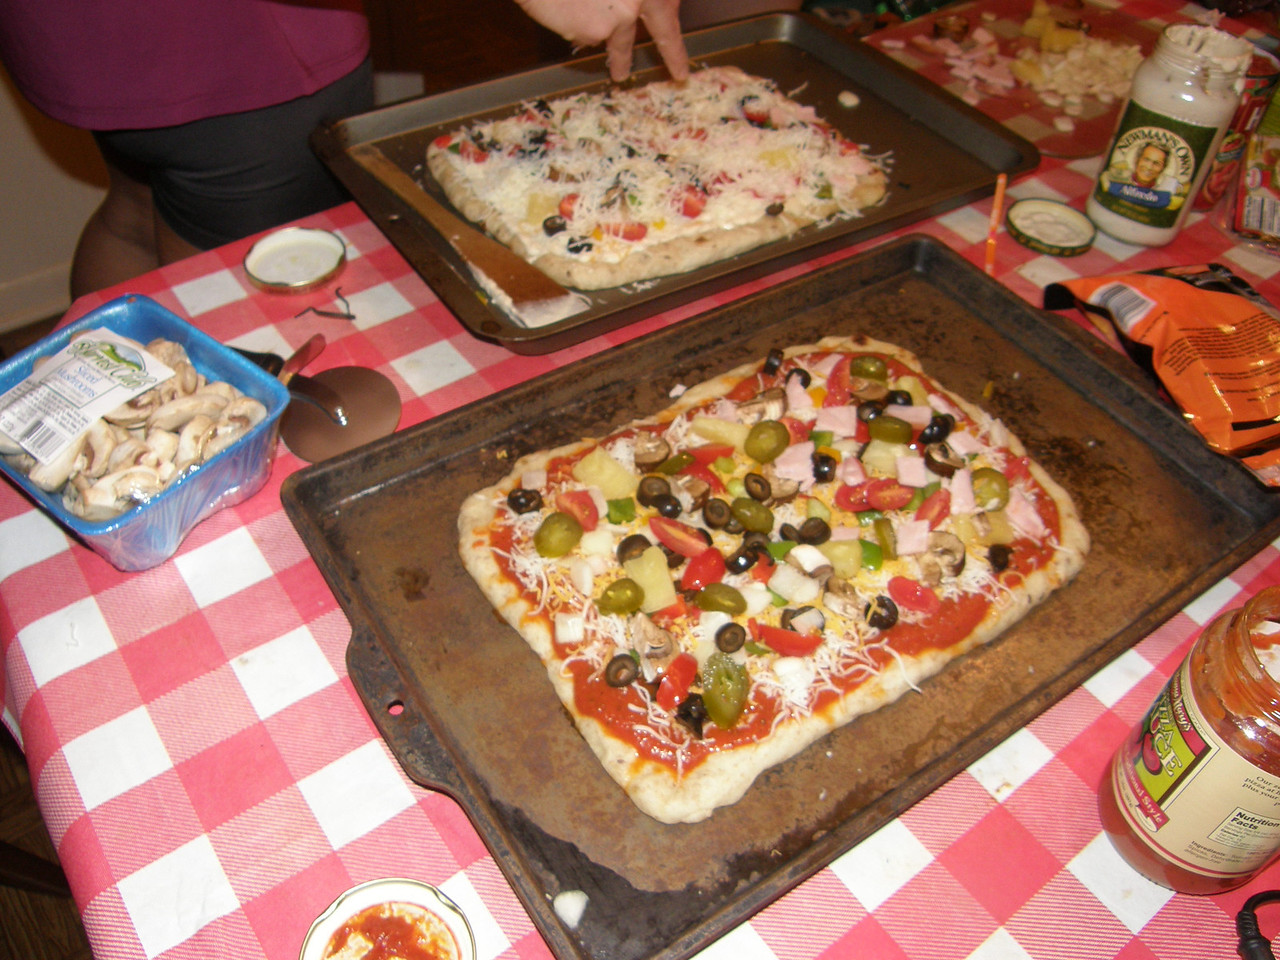 The homemade pizza!  Constructed by Sarah, Katie, and Daddy!  And it was delicious.